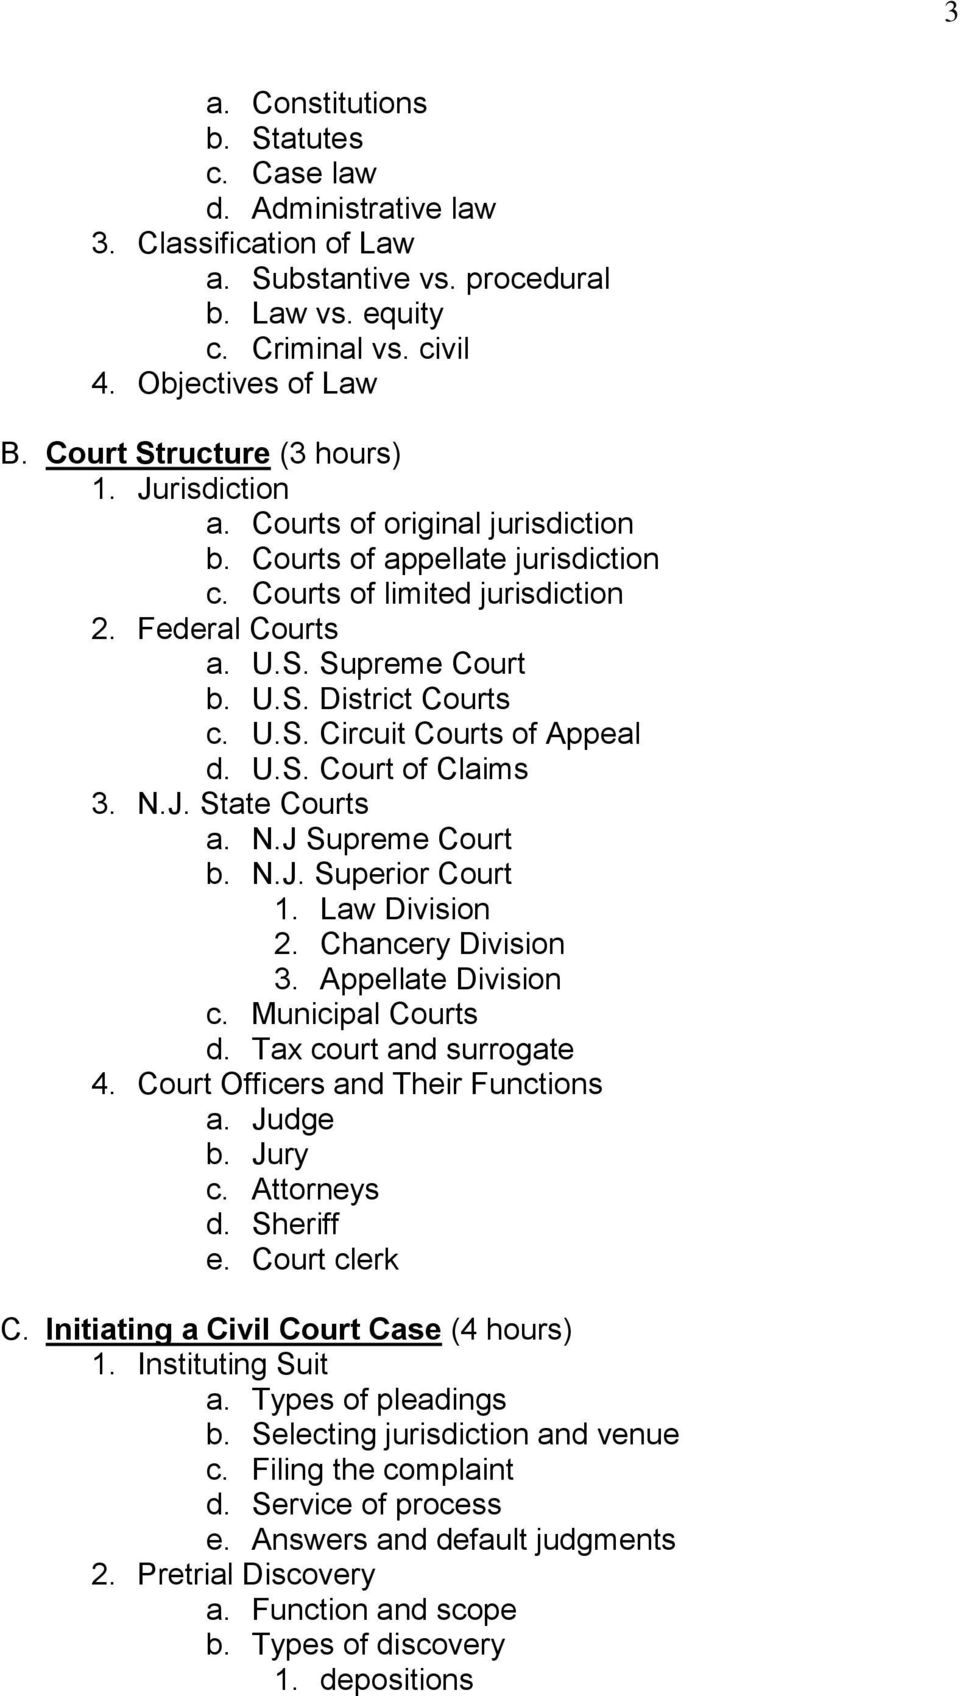 U.S. Circuit Courts of Appeal d. U.S. Court of Claims 3. N.J. State Courts a. N.J Supreme Court b. N.J. Superior Court 1. Law Division 2. Chancery Division 3. Appellate Division c. Municipal Courts d.